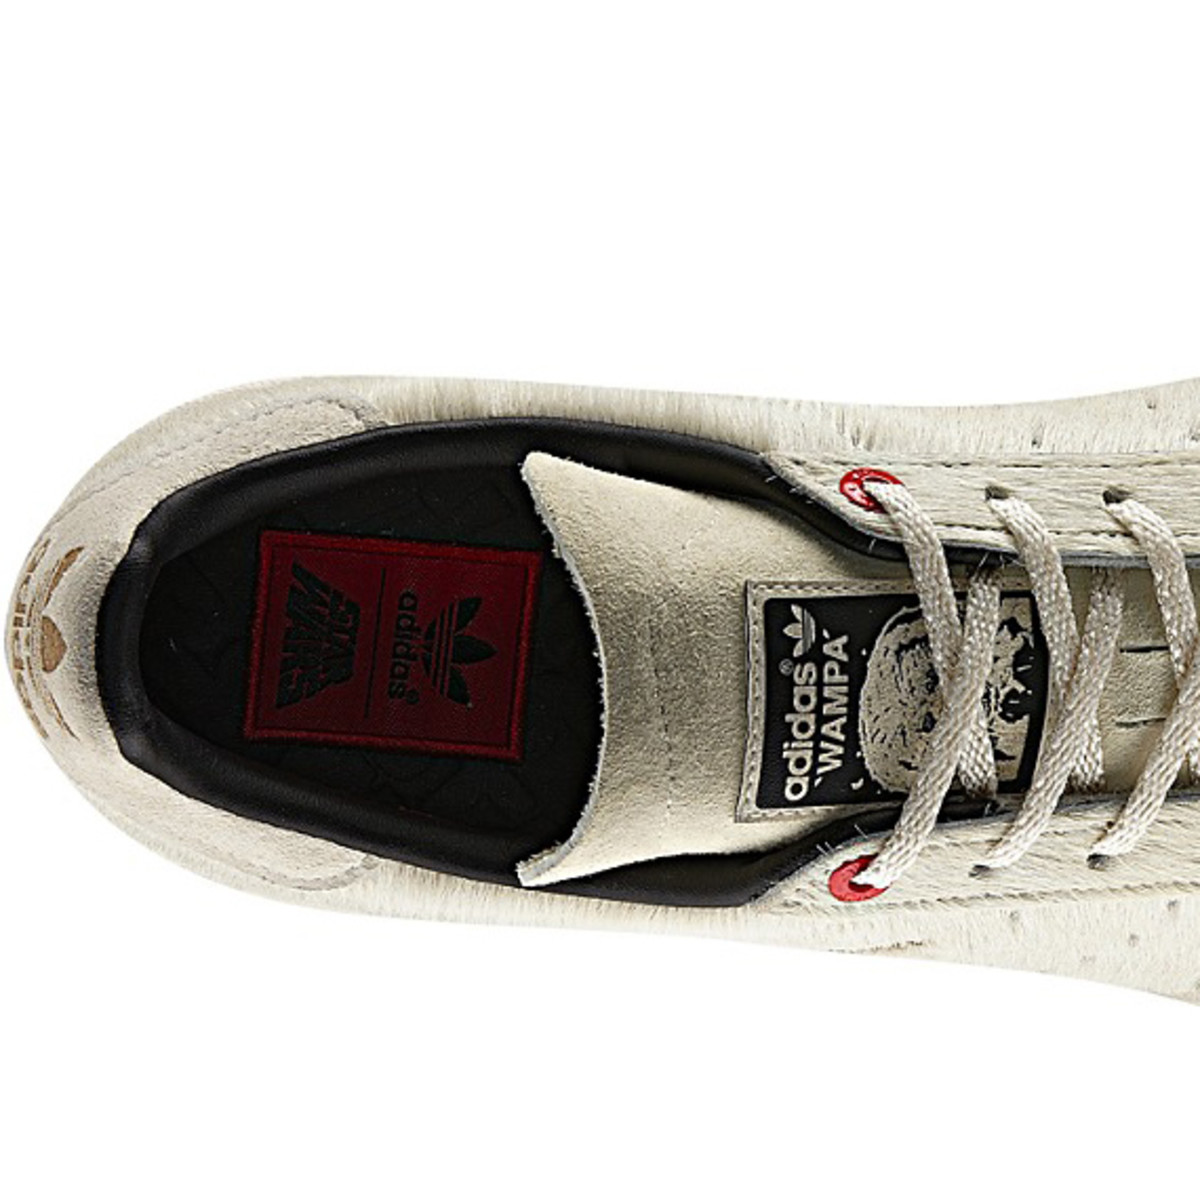 star-wars-adidas-originals-campus-80s-wampa-010